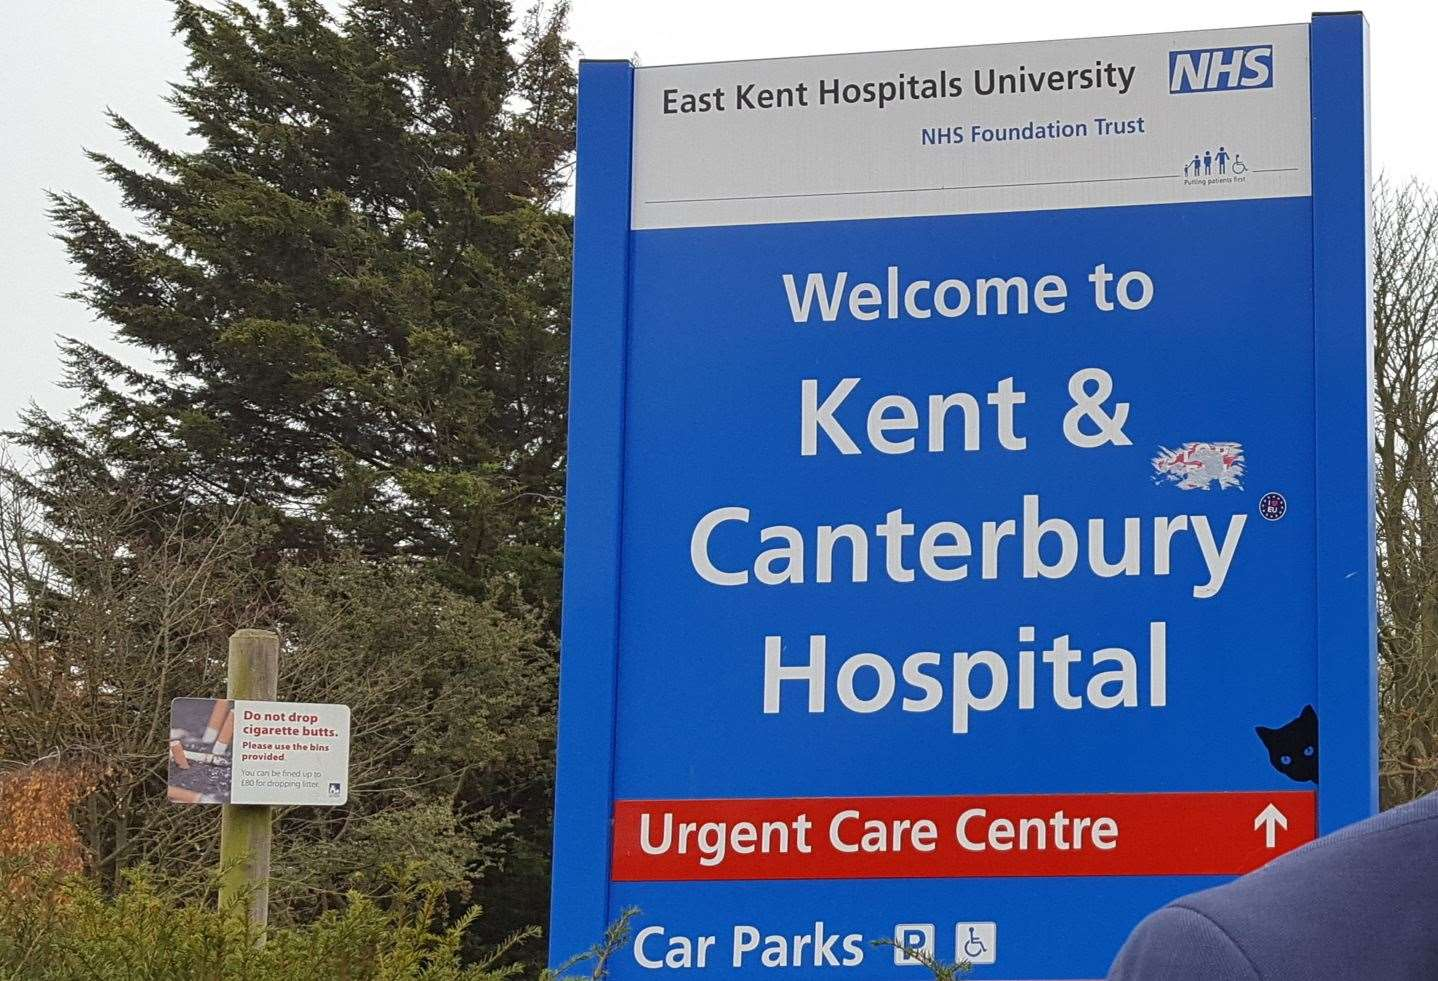 A black cat on the sign at the Kent and Canterbury Hospital